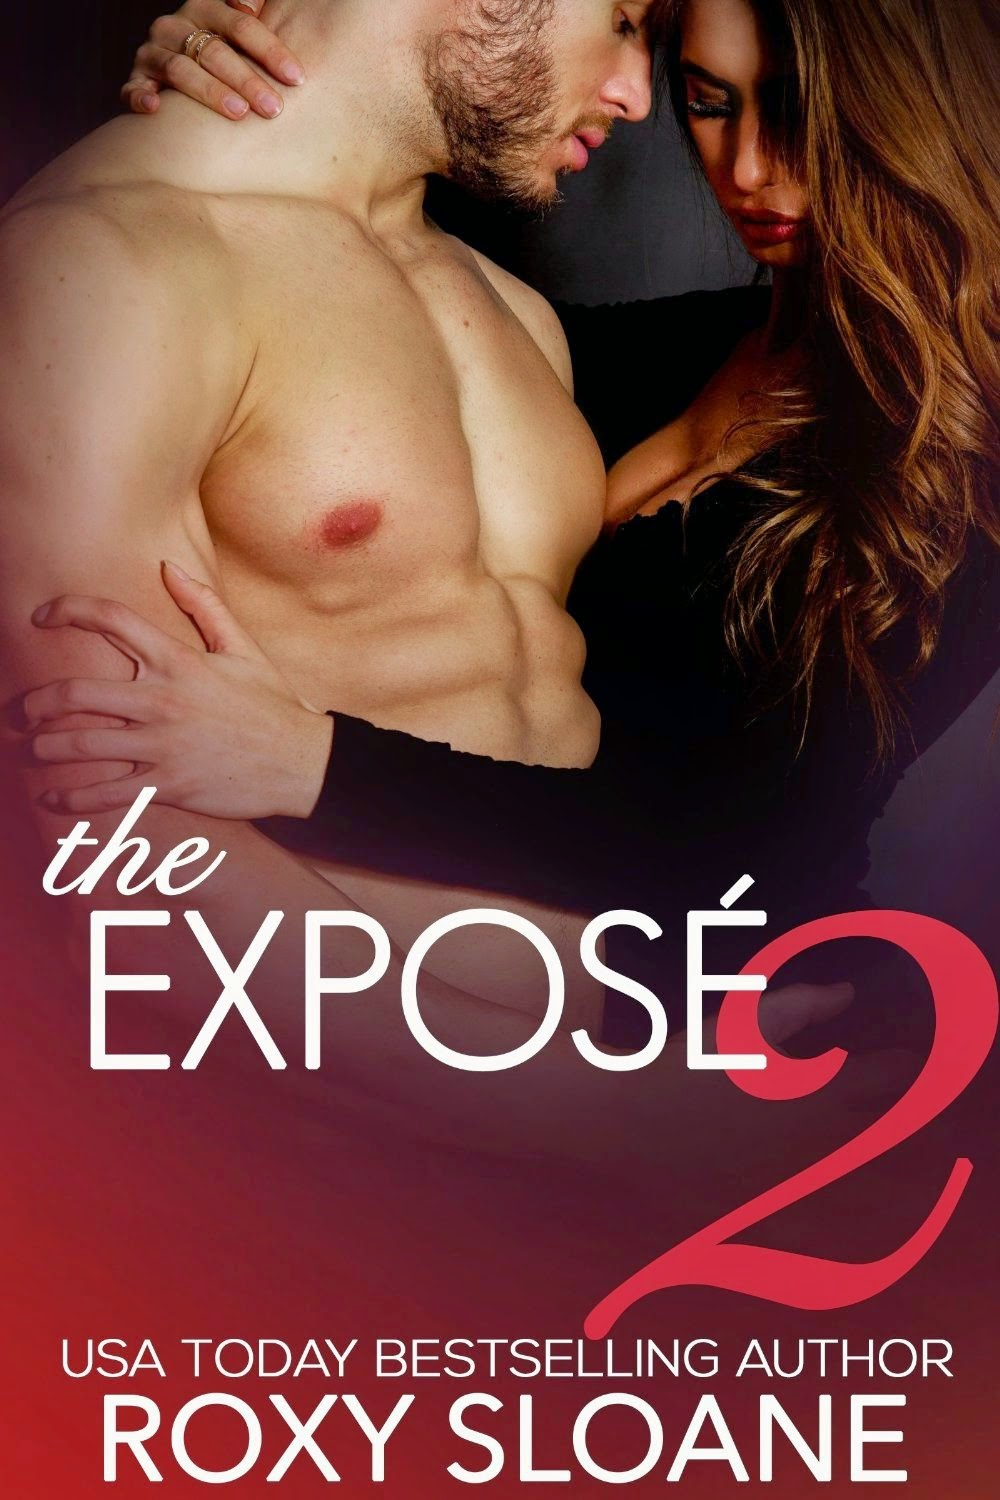 The Exposé Vol. 2